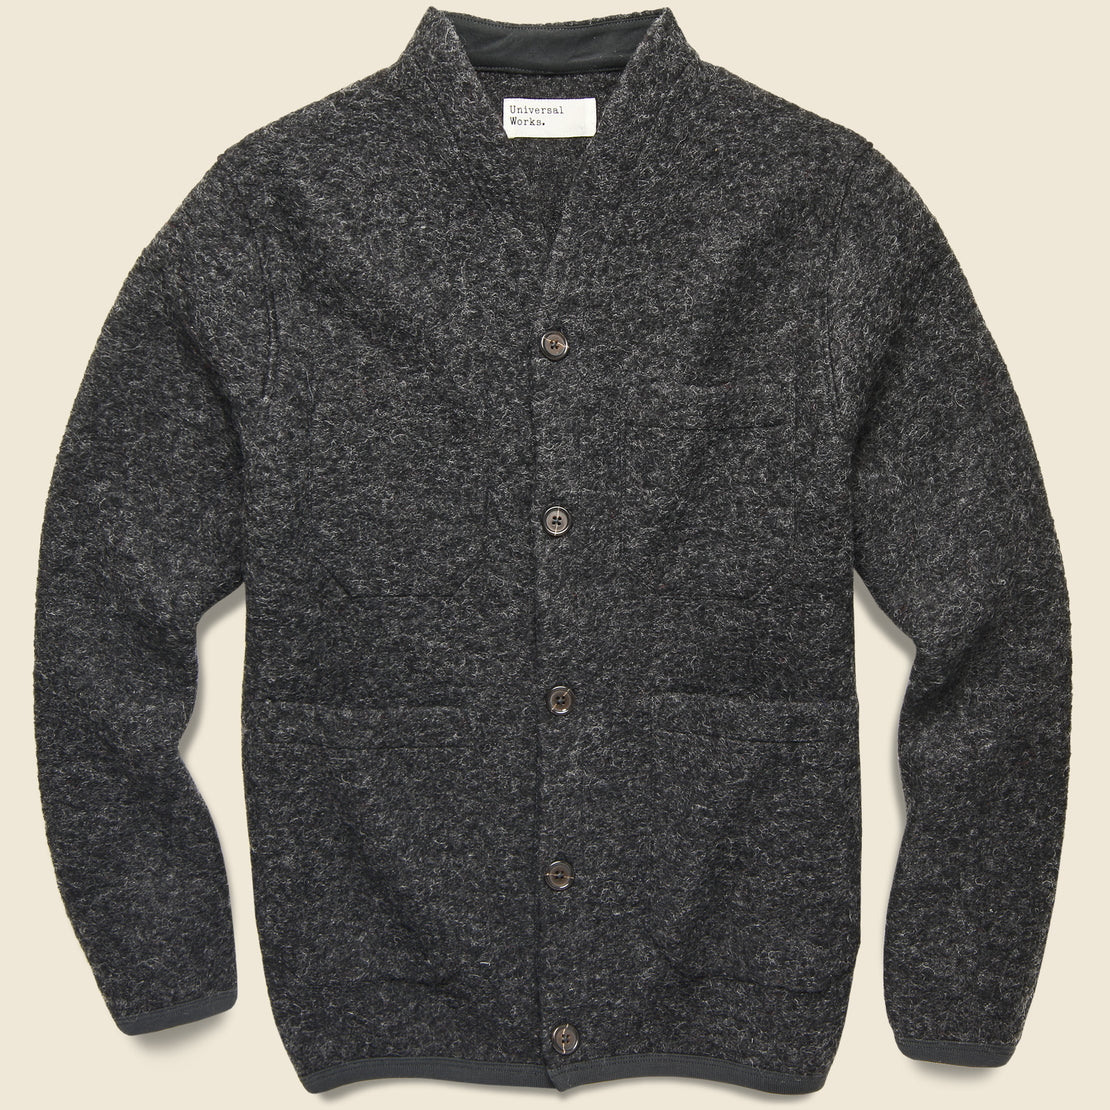 Universal Works Wool Fleece Cardigan - Charcoal